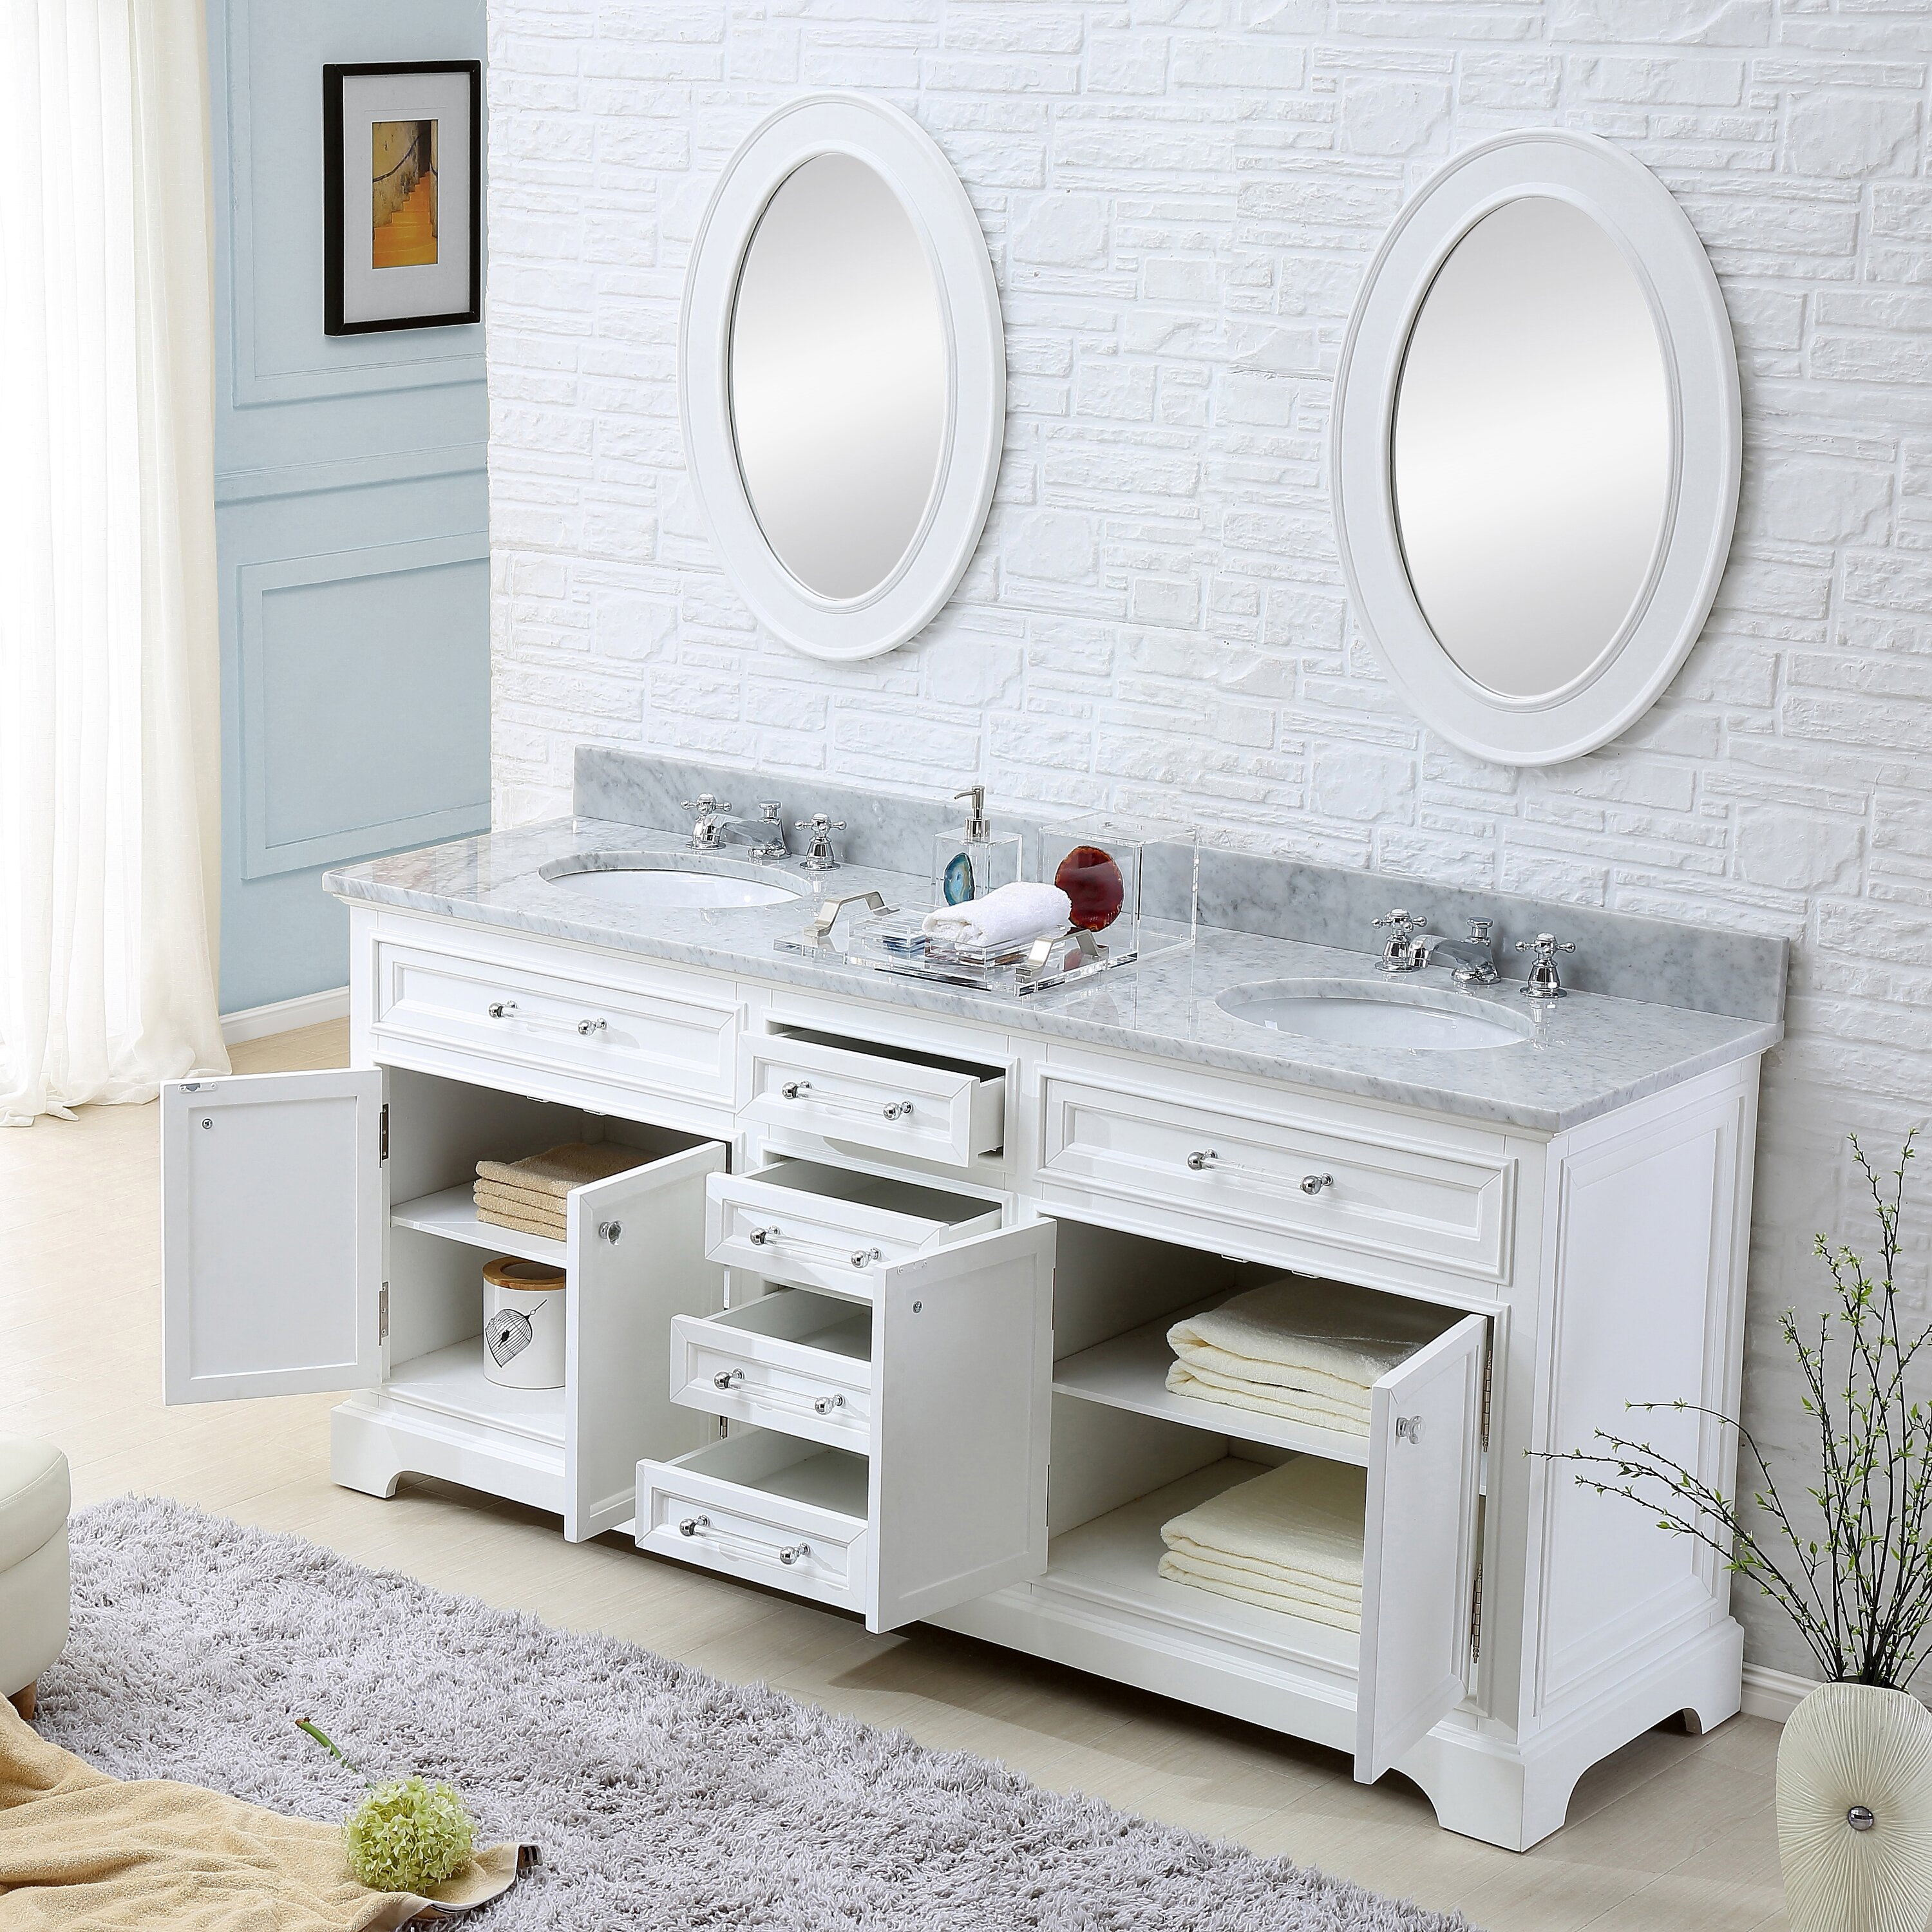 Darby home co colchester 72 double sink bathroom vanity set with mirror white reviews wayfair for Bathroom vanities 72 double sink